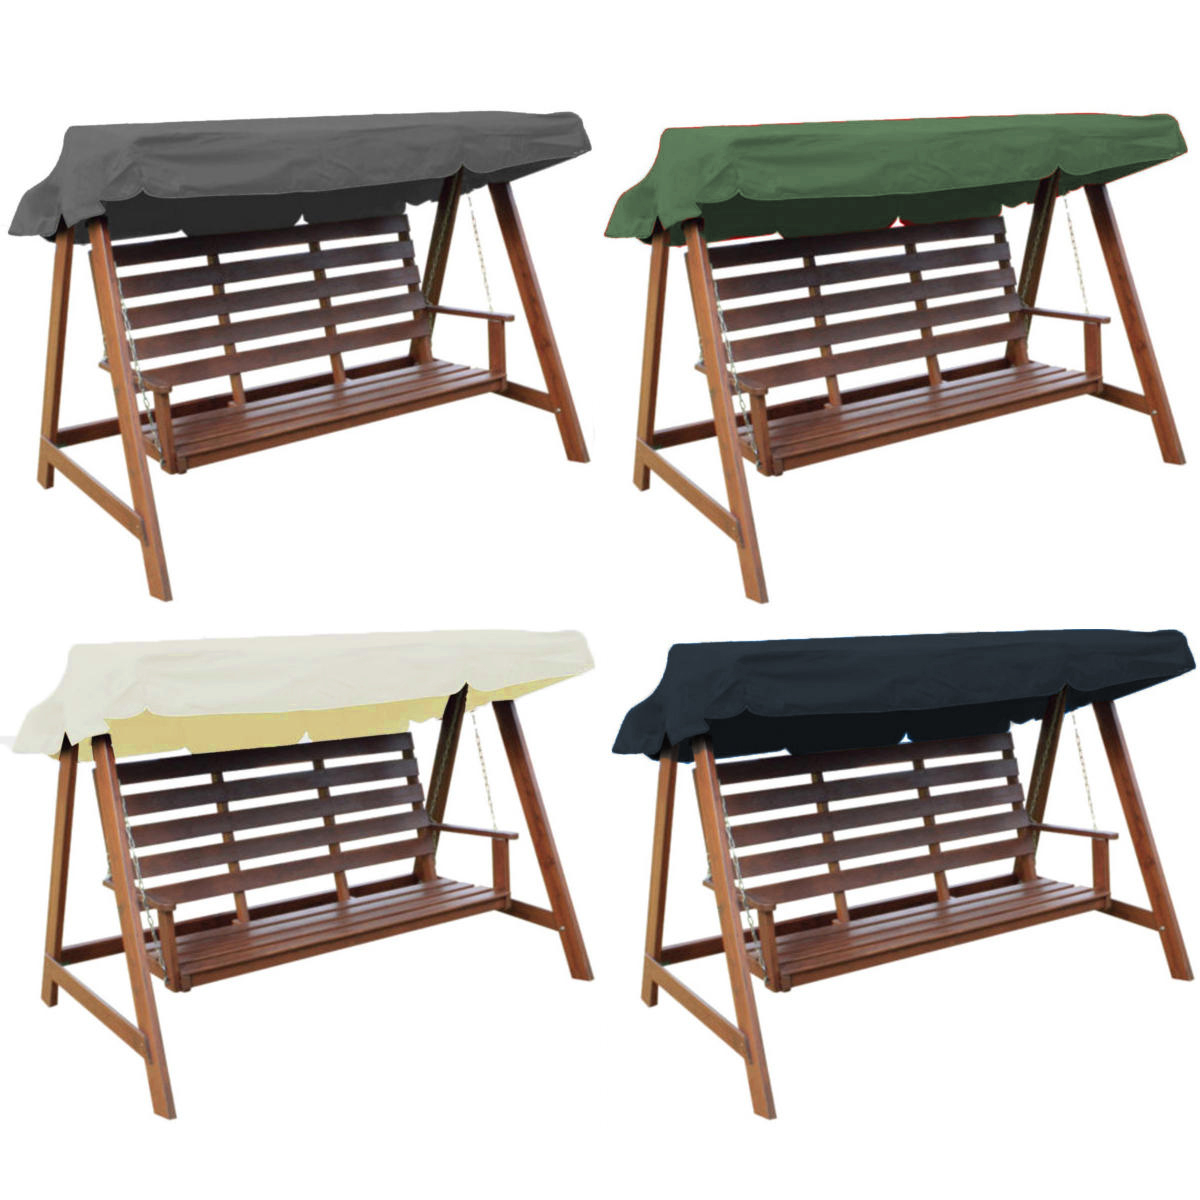 3 Seater Replacement Canopy Spare Cover For Garden Swing